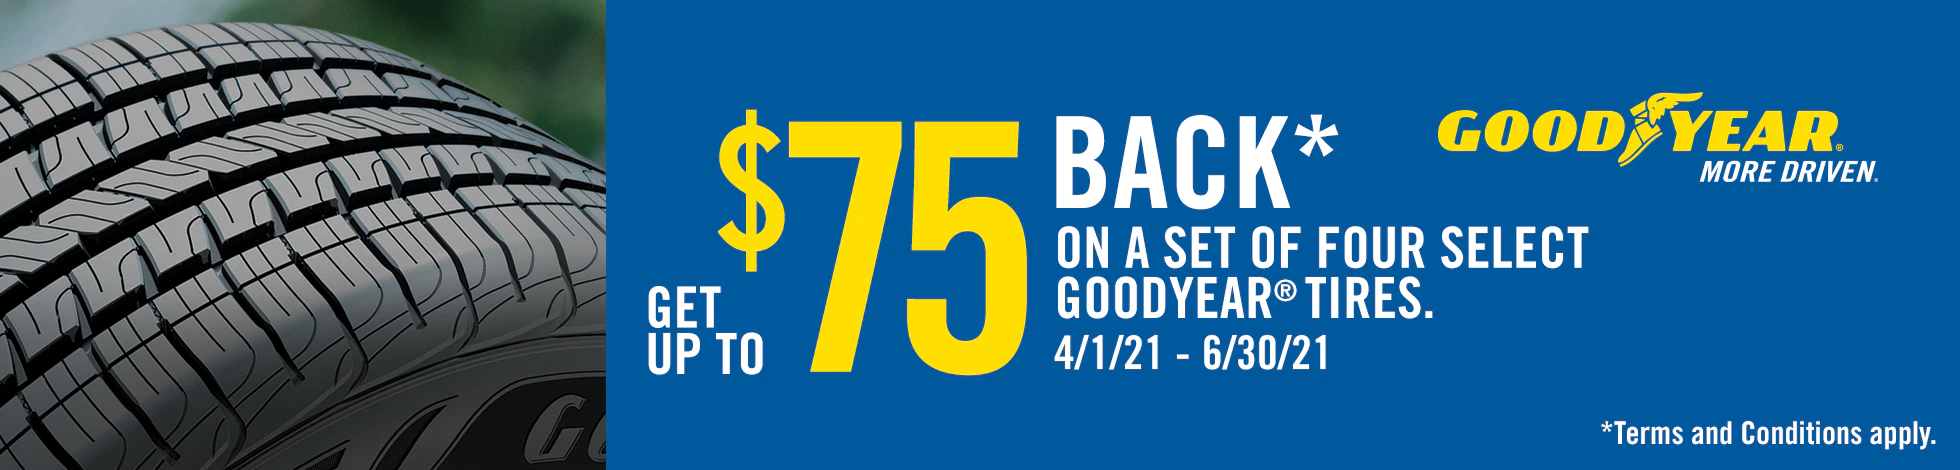 Goodyear Tires - Get Up to $75 Back